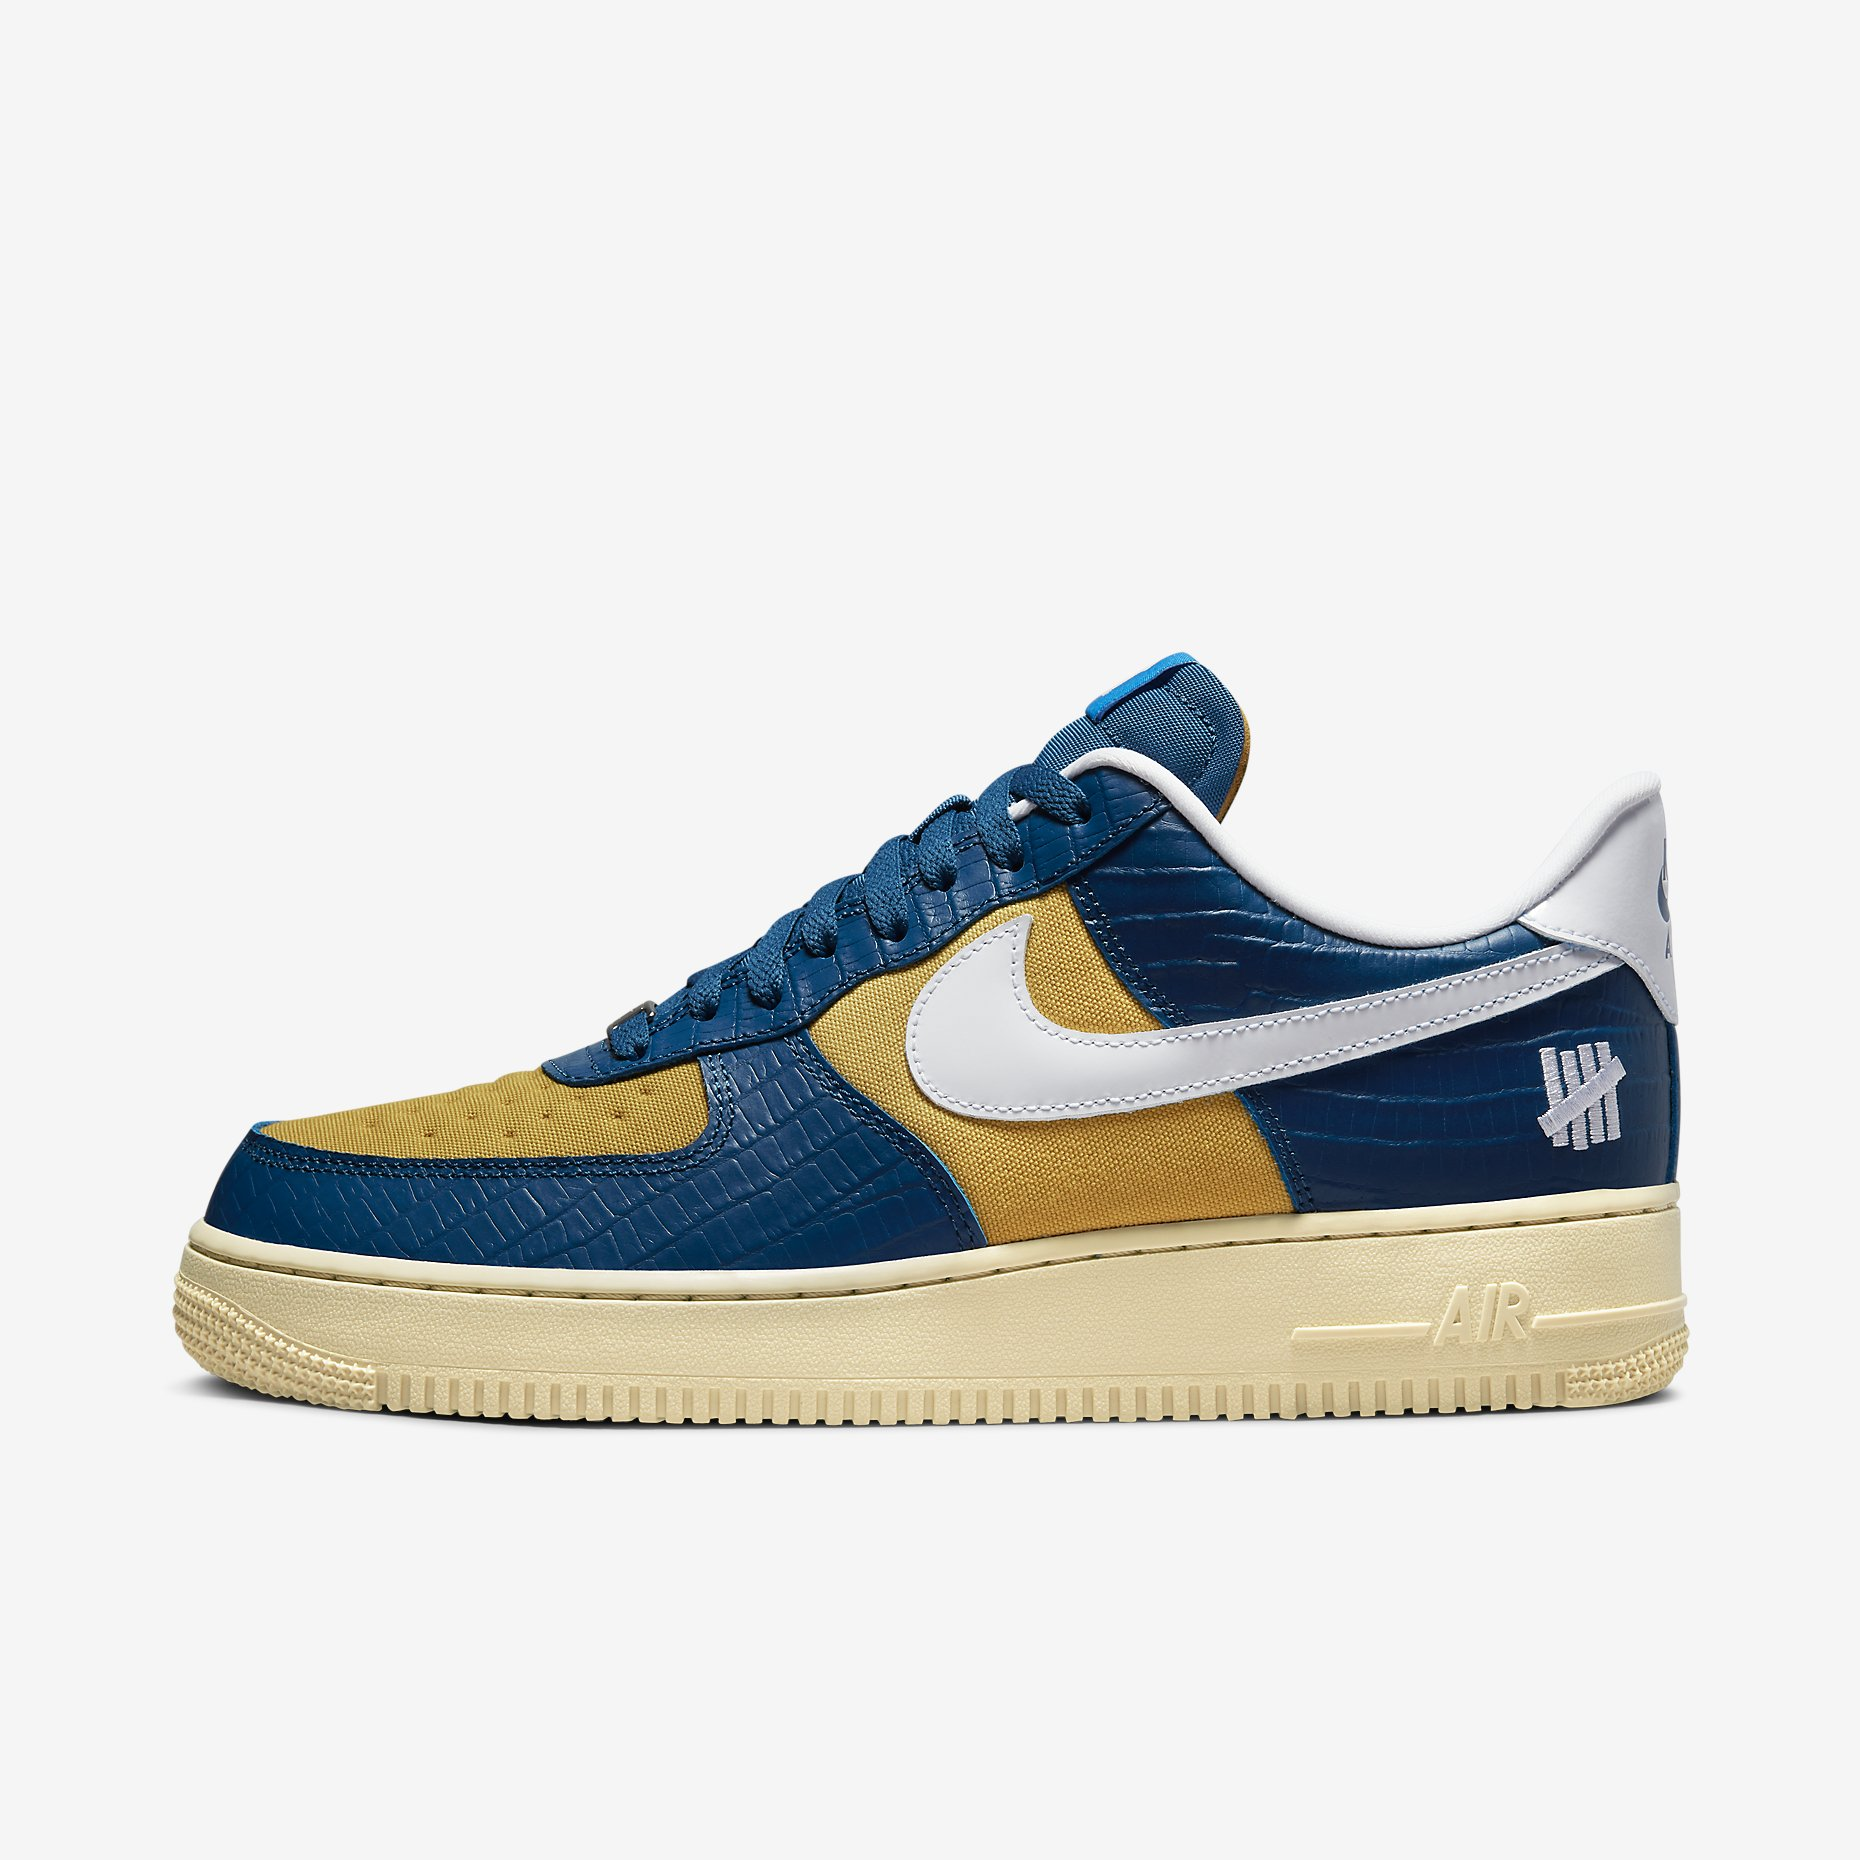 Undefeated x Air Force 1 Low SP 'Dunk vs AF1'